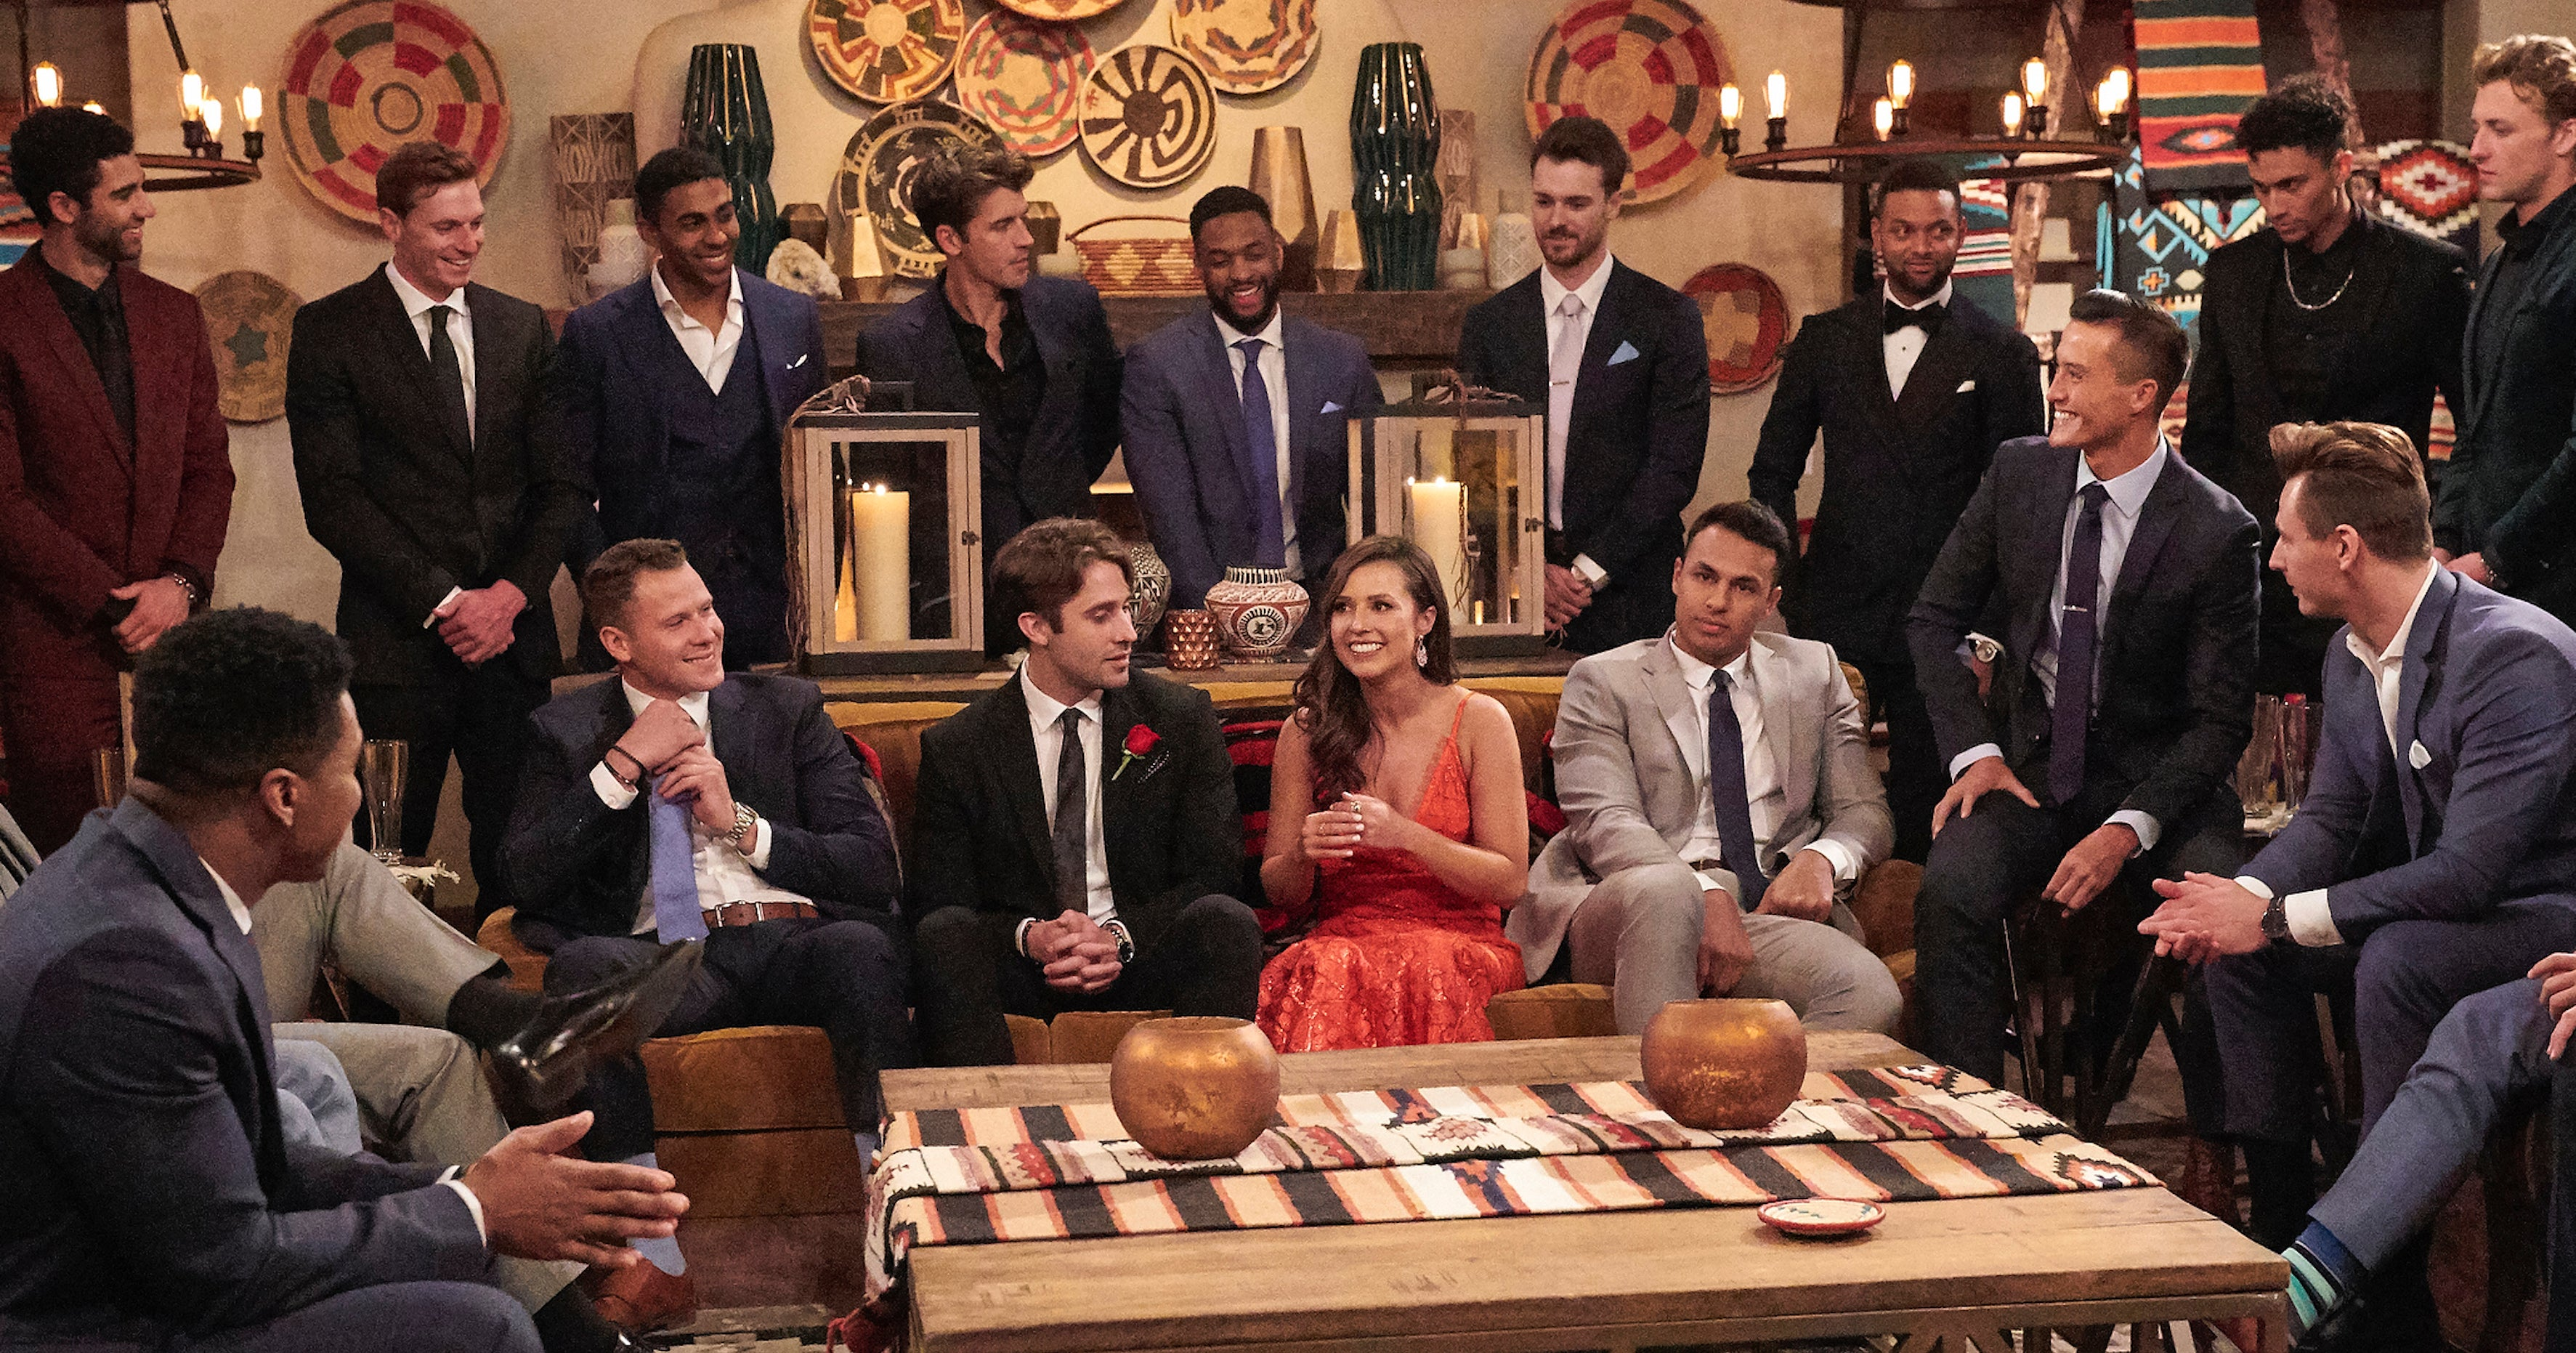 The Bachelorette Cast Just Broke The Rules & Future Casts Should Take Note